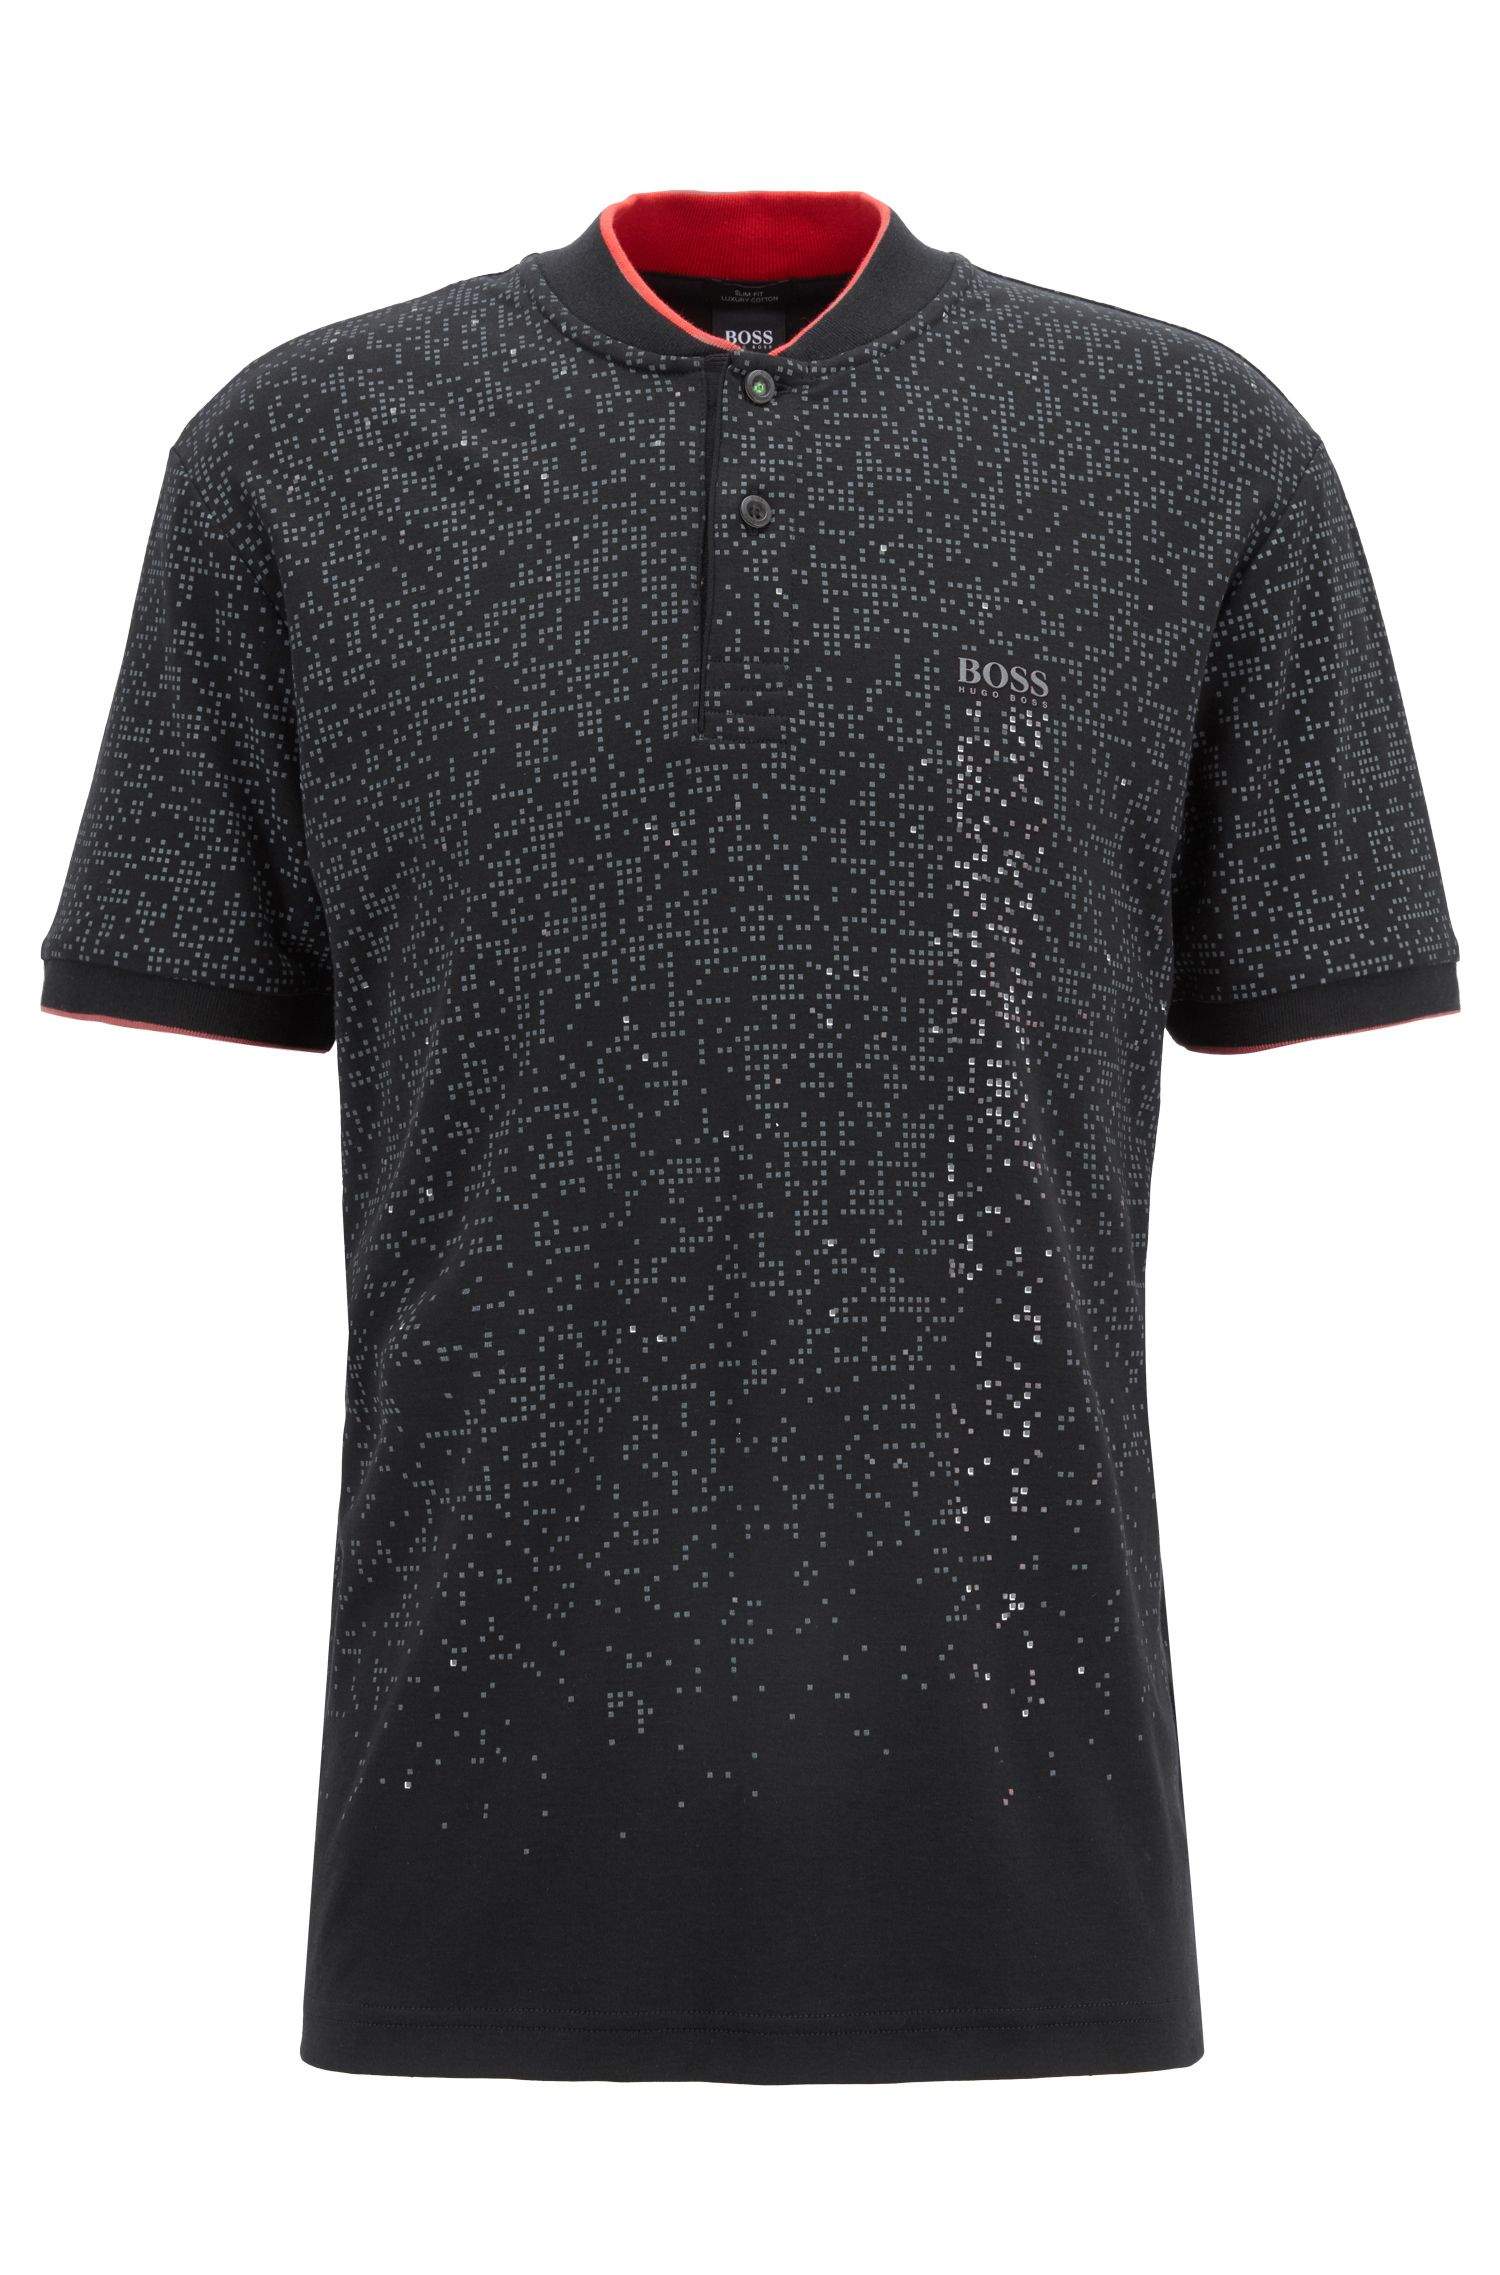 Stand-collar polo shirt in patterned interlock cotton, Black